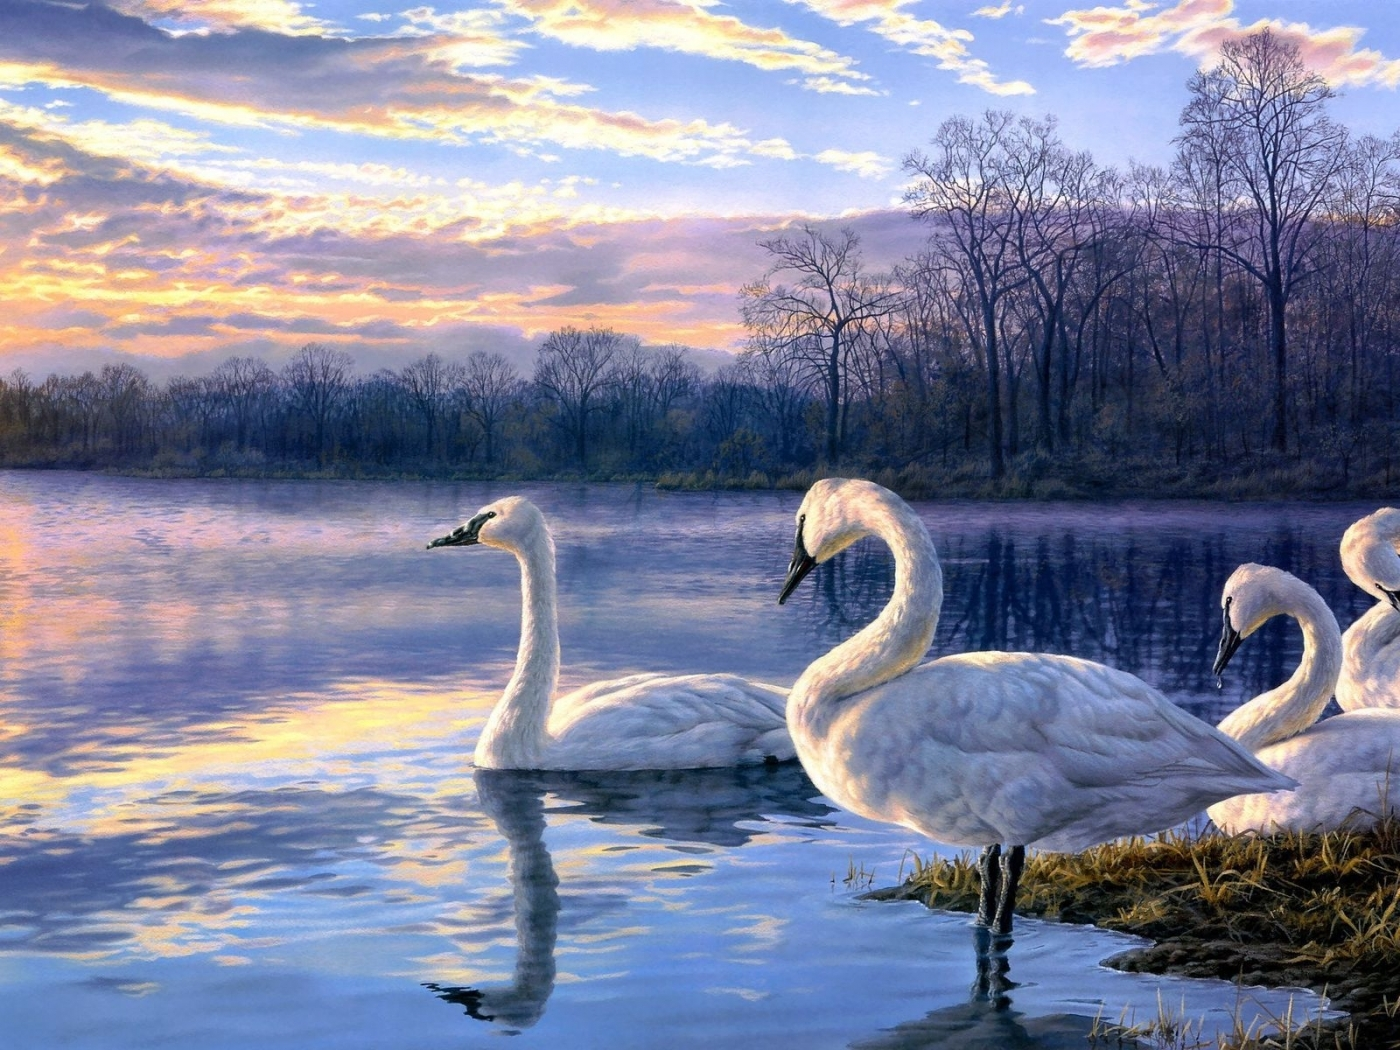 27645 download wallpaper Animals, Birds, Swans screensavers and pictures for free